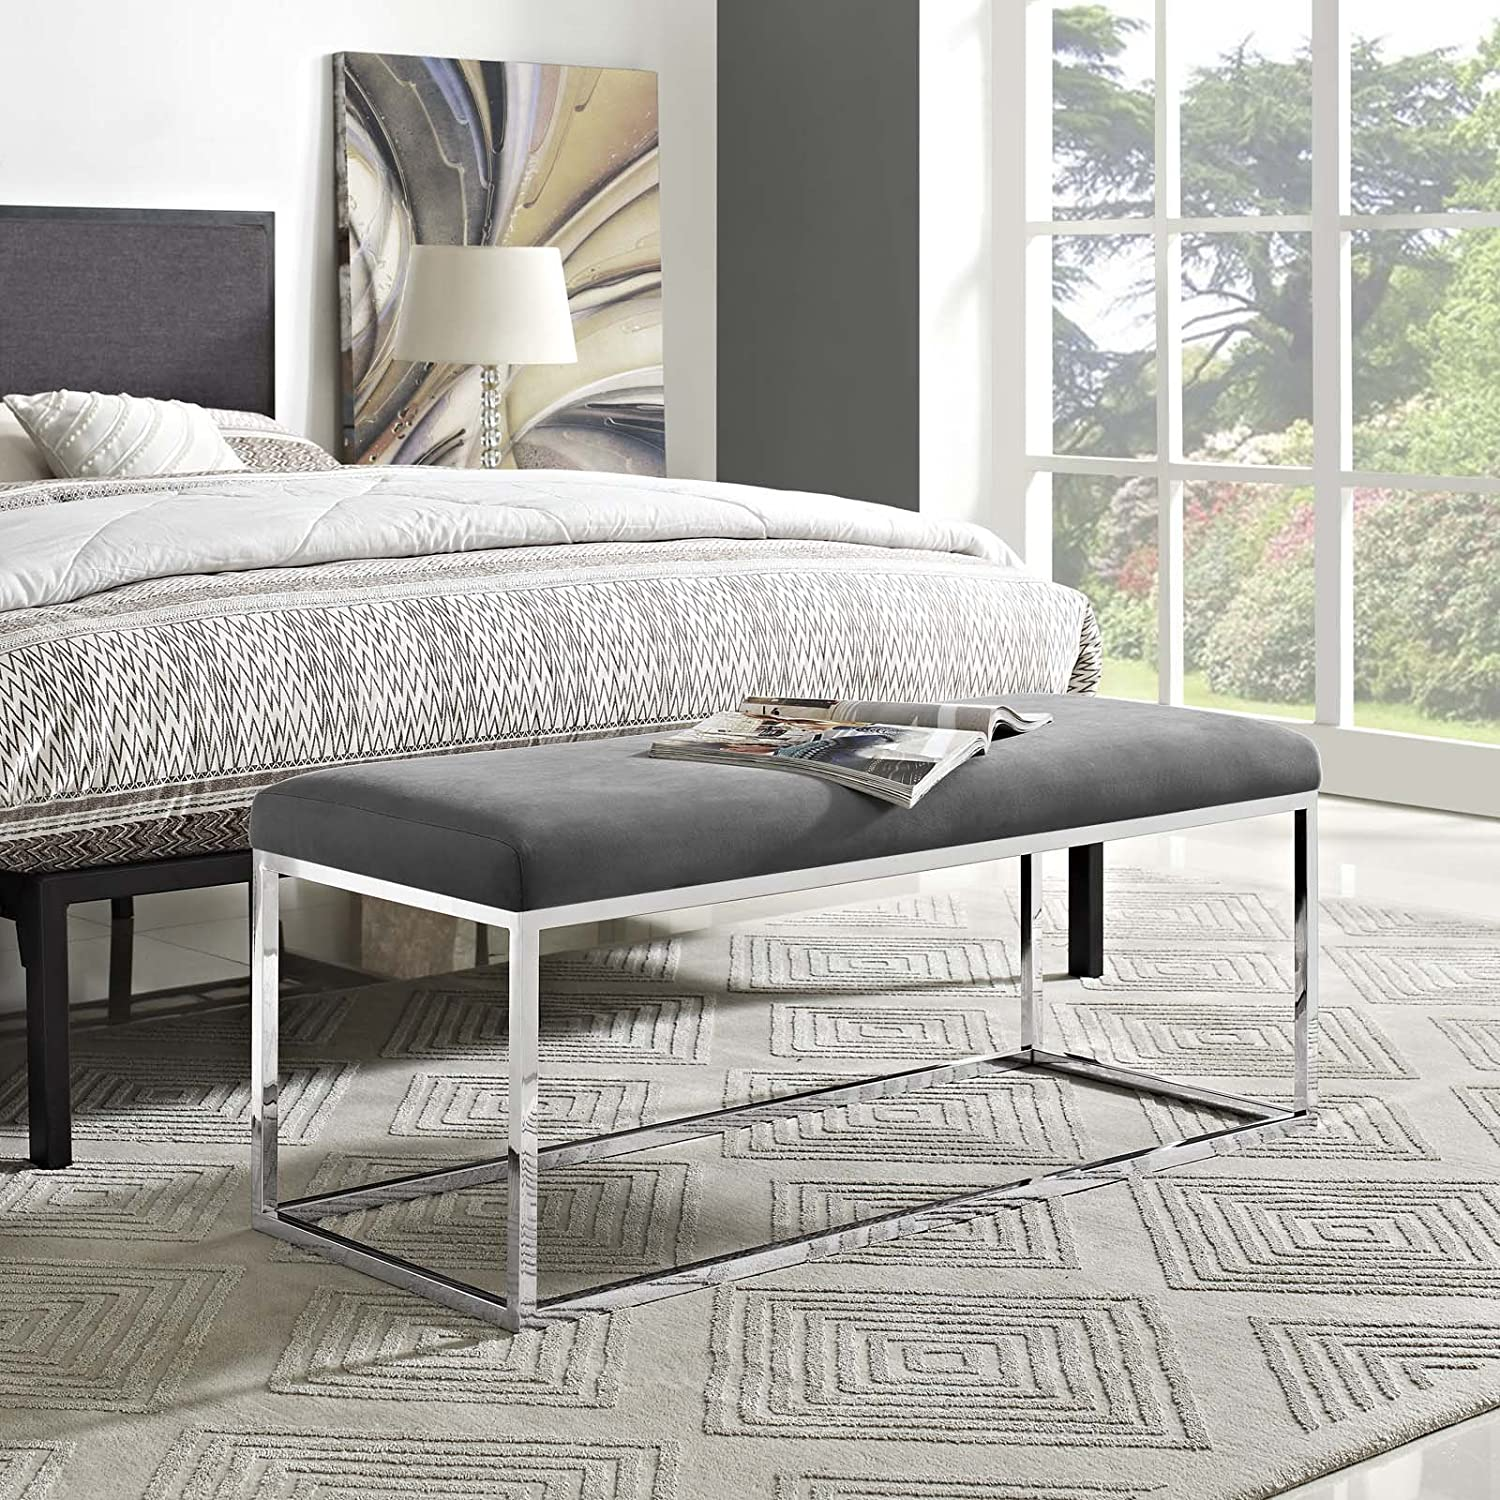 Modway Anticipate Modern Bench With Sheepskin Upholstery and Steel Stainless Steel Frame, White